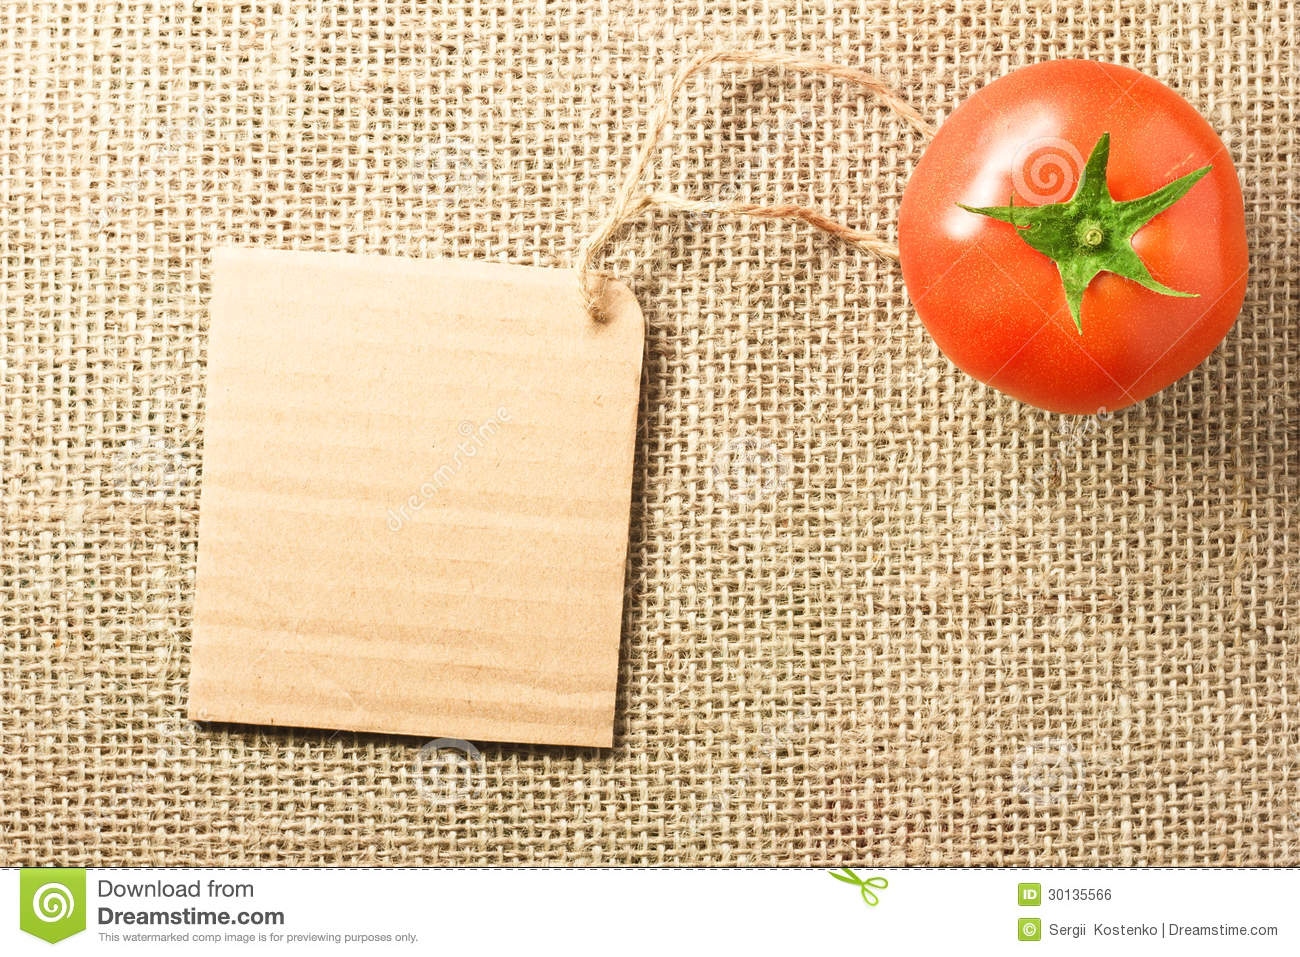 I tag background image - Tomato Vegetable And Price Tag On Sacking Background Texture Royalty Free Stock Image